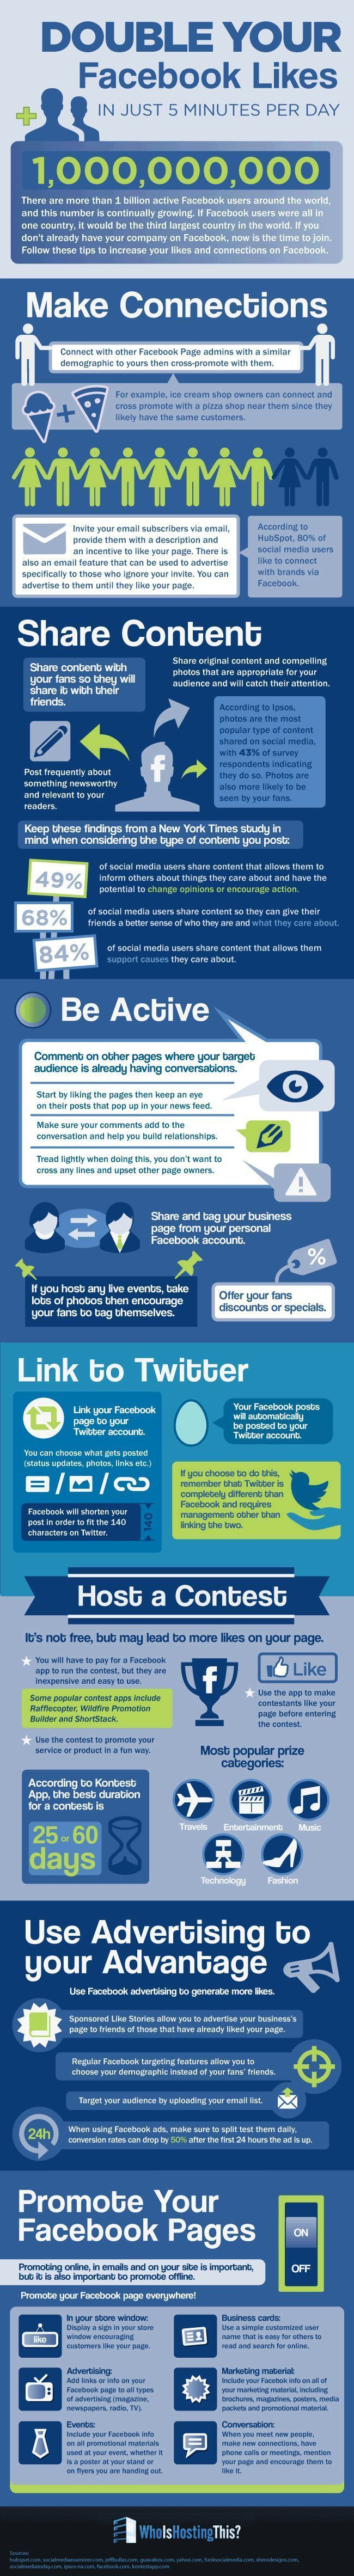 Facebook marketing tips to double your Facebook Likes. Terrific tips on this infographic. Click to blog to read more!